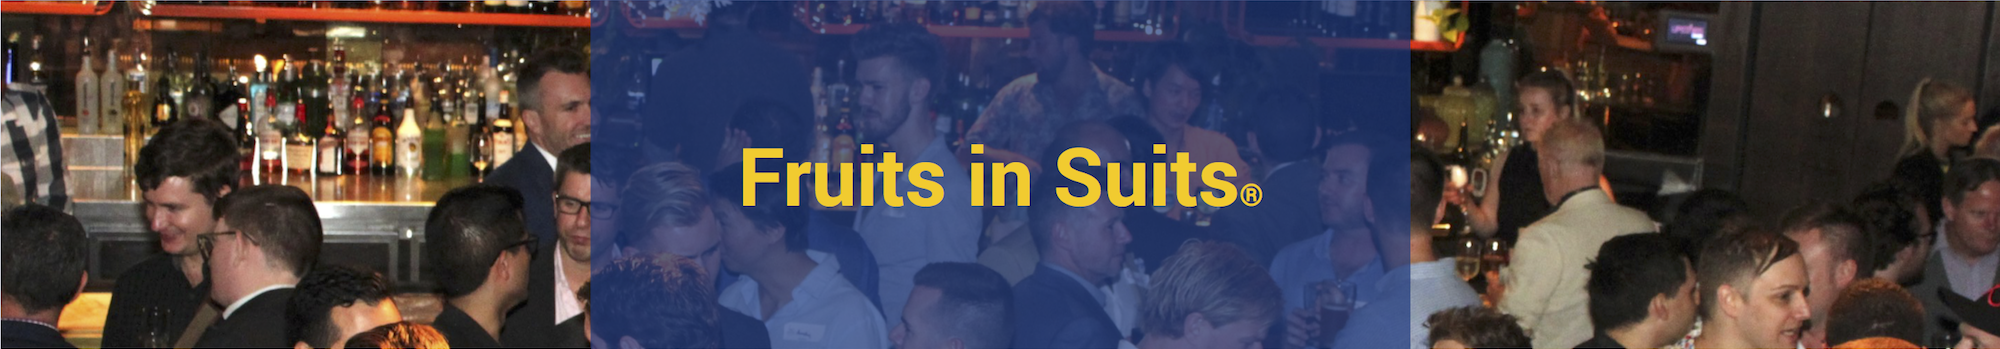 BANNER EVENTS Fruits in Suits 2000x350pxl